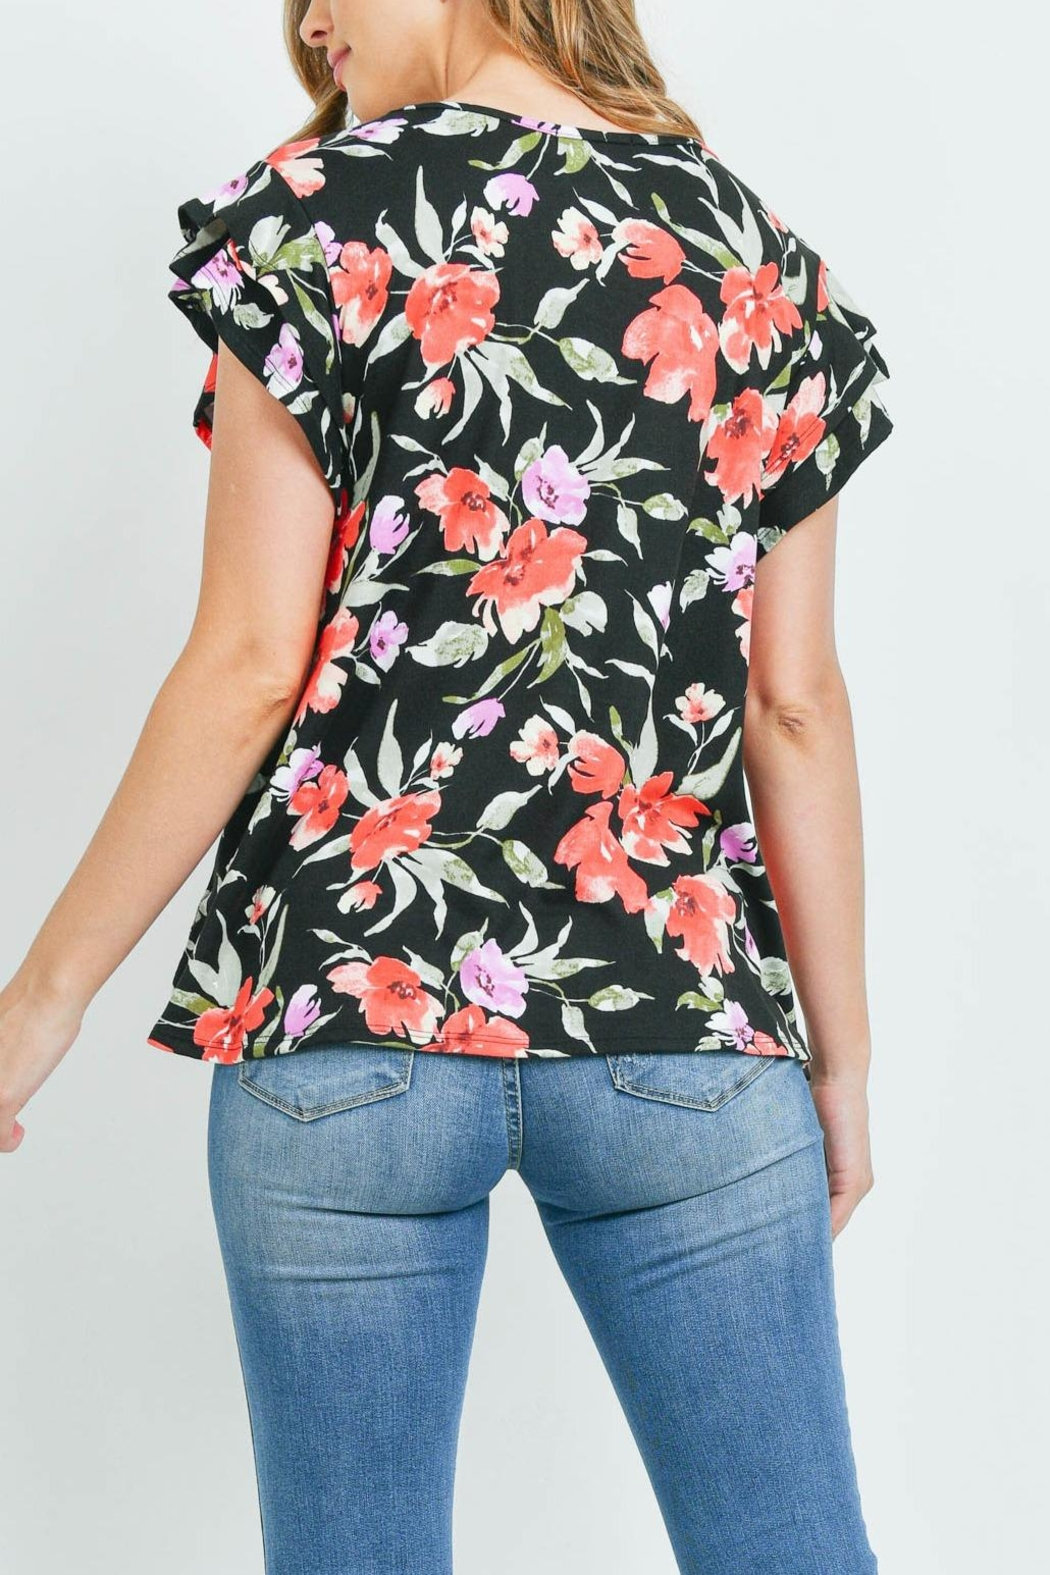 Riah Fashion Painterly Floral Print Cap Sleeve Top - Back Cropped Image